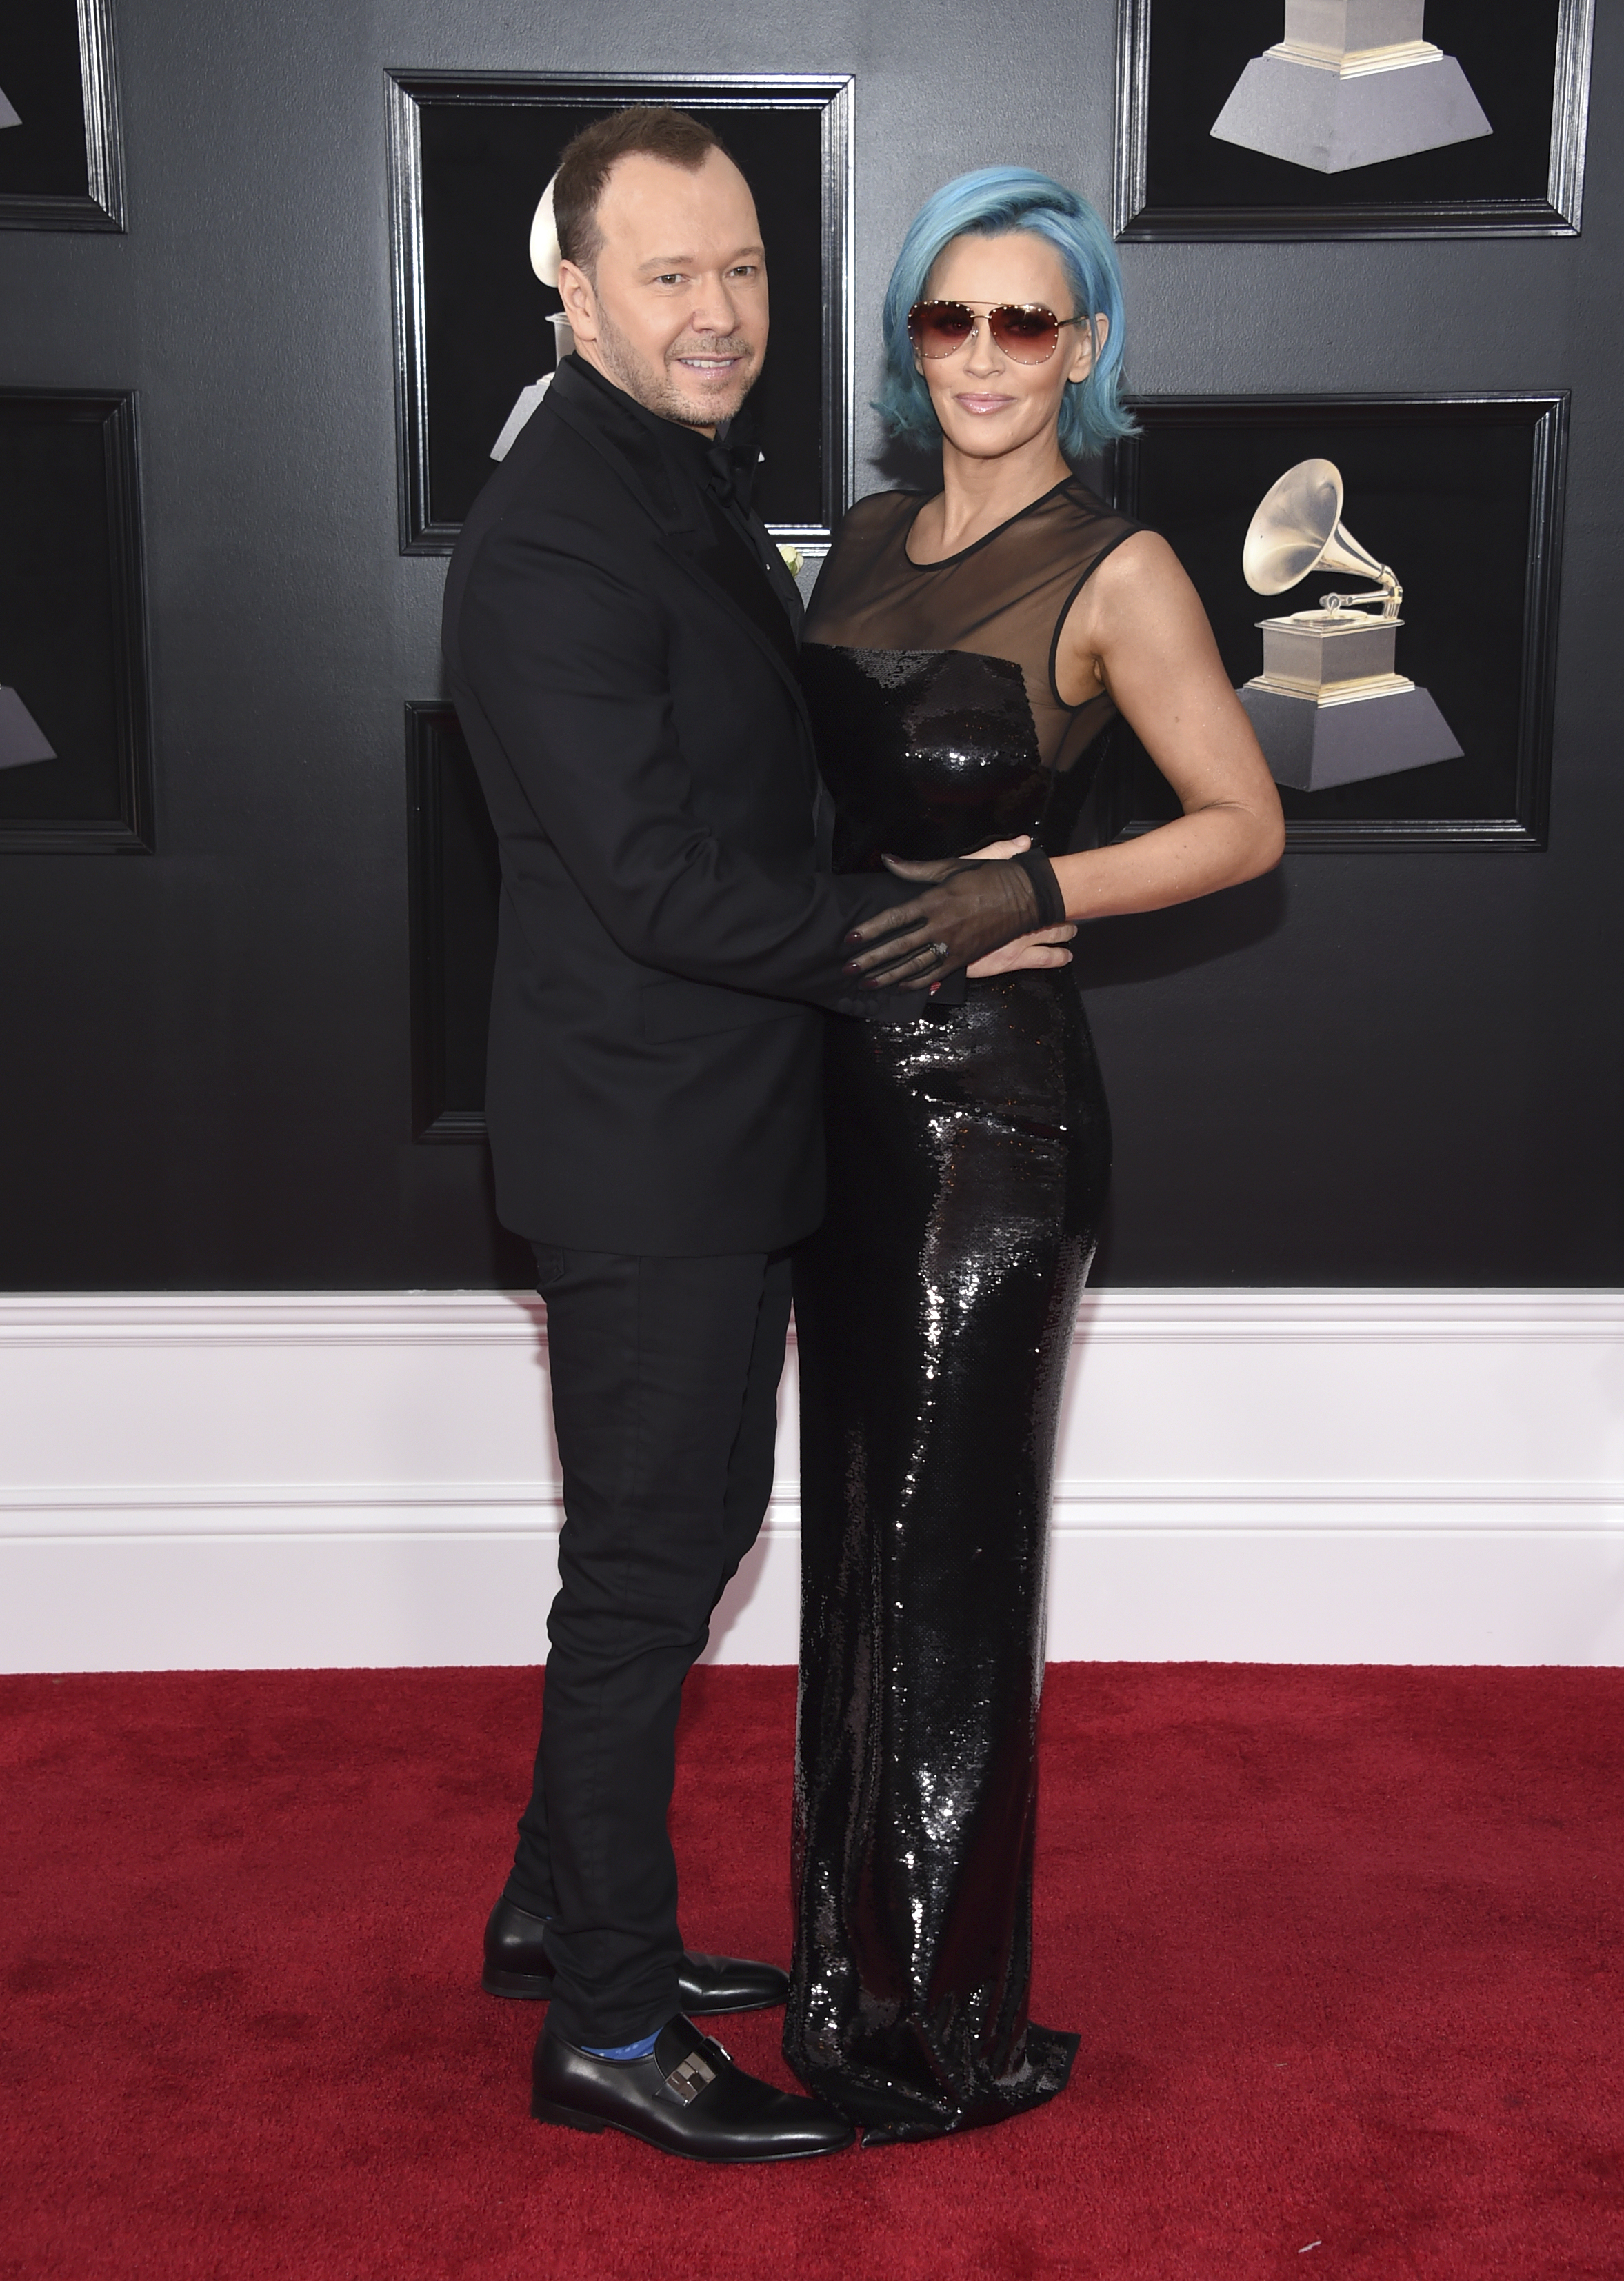 <div class='meta'><div class='origin-logo' data-origin='AP'></div><span class='caption-text' data-credit='Evan Agostini/Invision/AP'>Donnie Wahlberg, left, and Jenny McCarthy arrive at the 60th annual Grammy Awards at Madison Square Garden on Sunday, Jan. 28, 2018, in New York.</span></div>